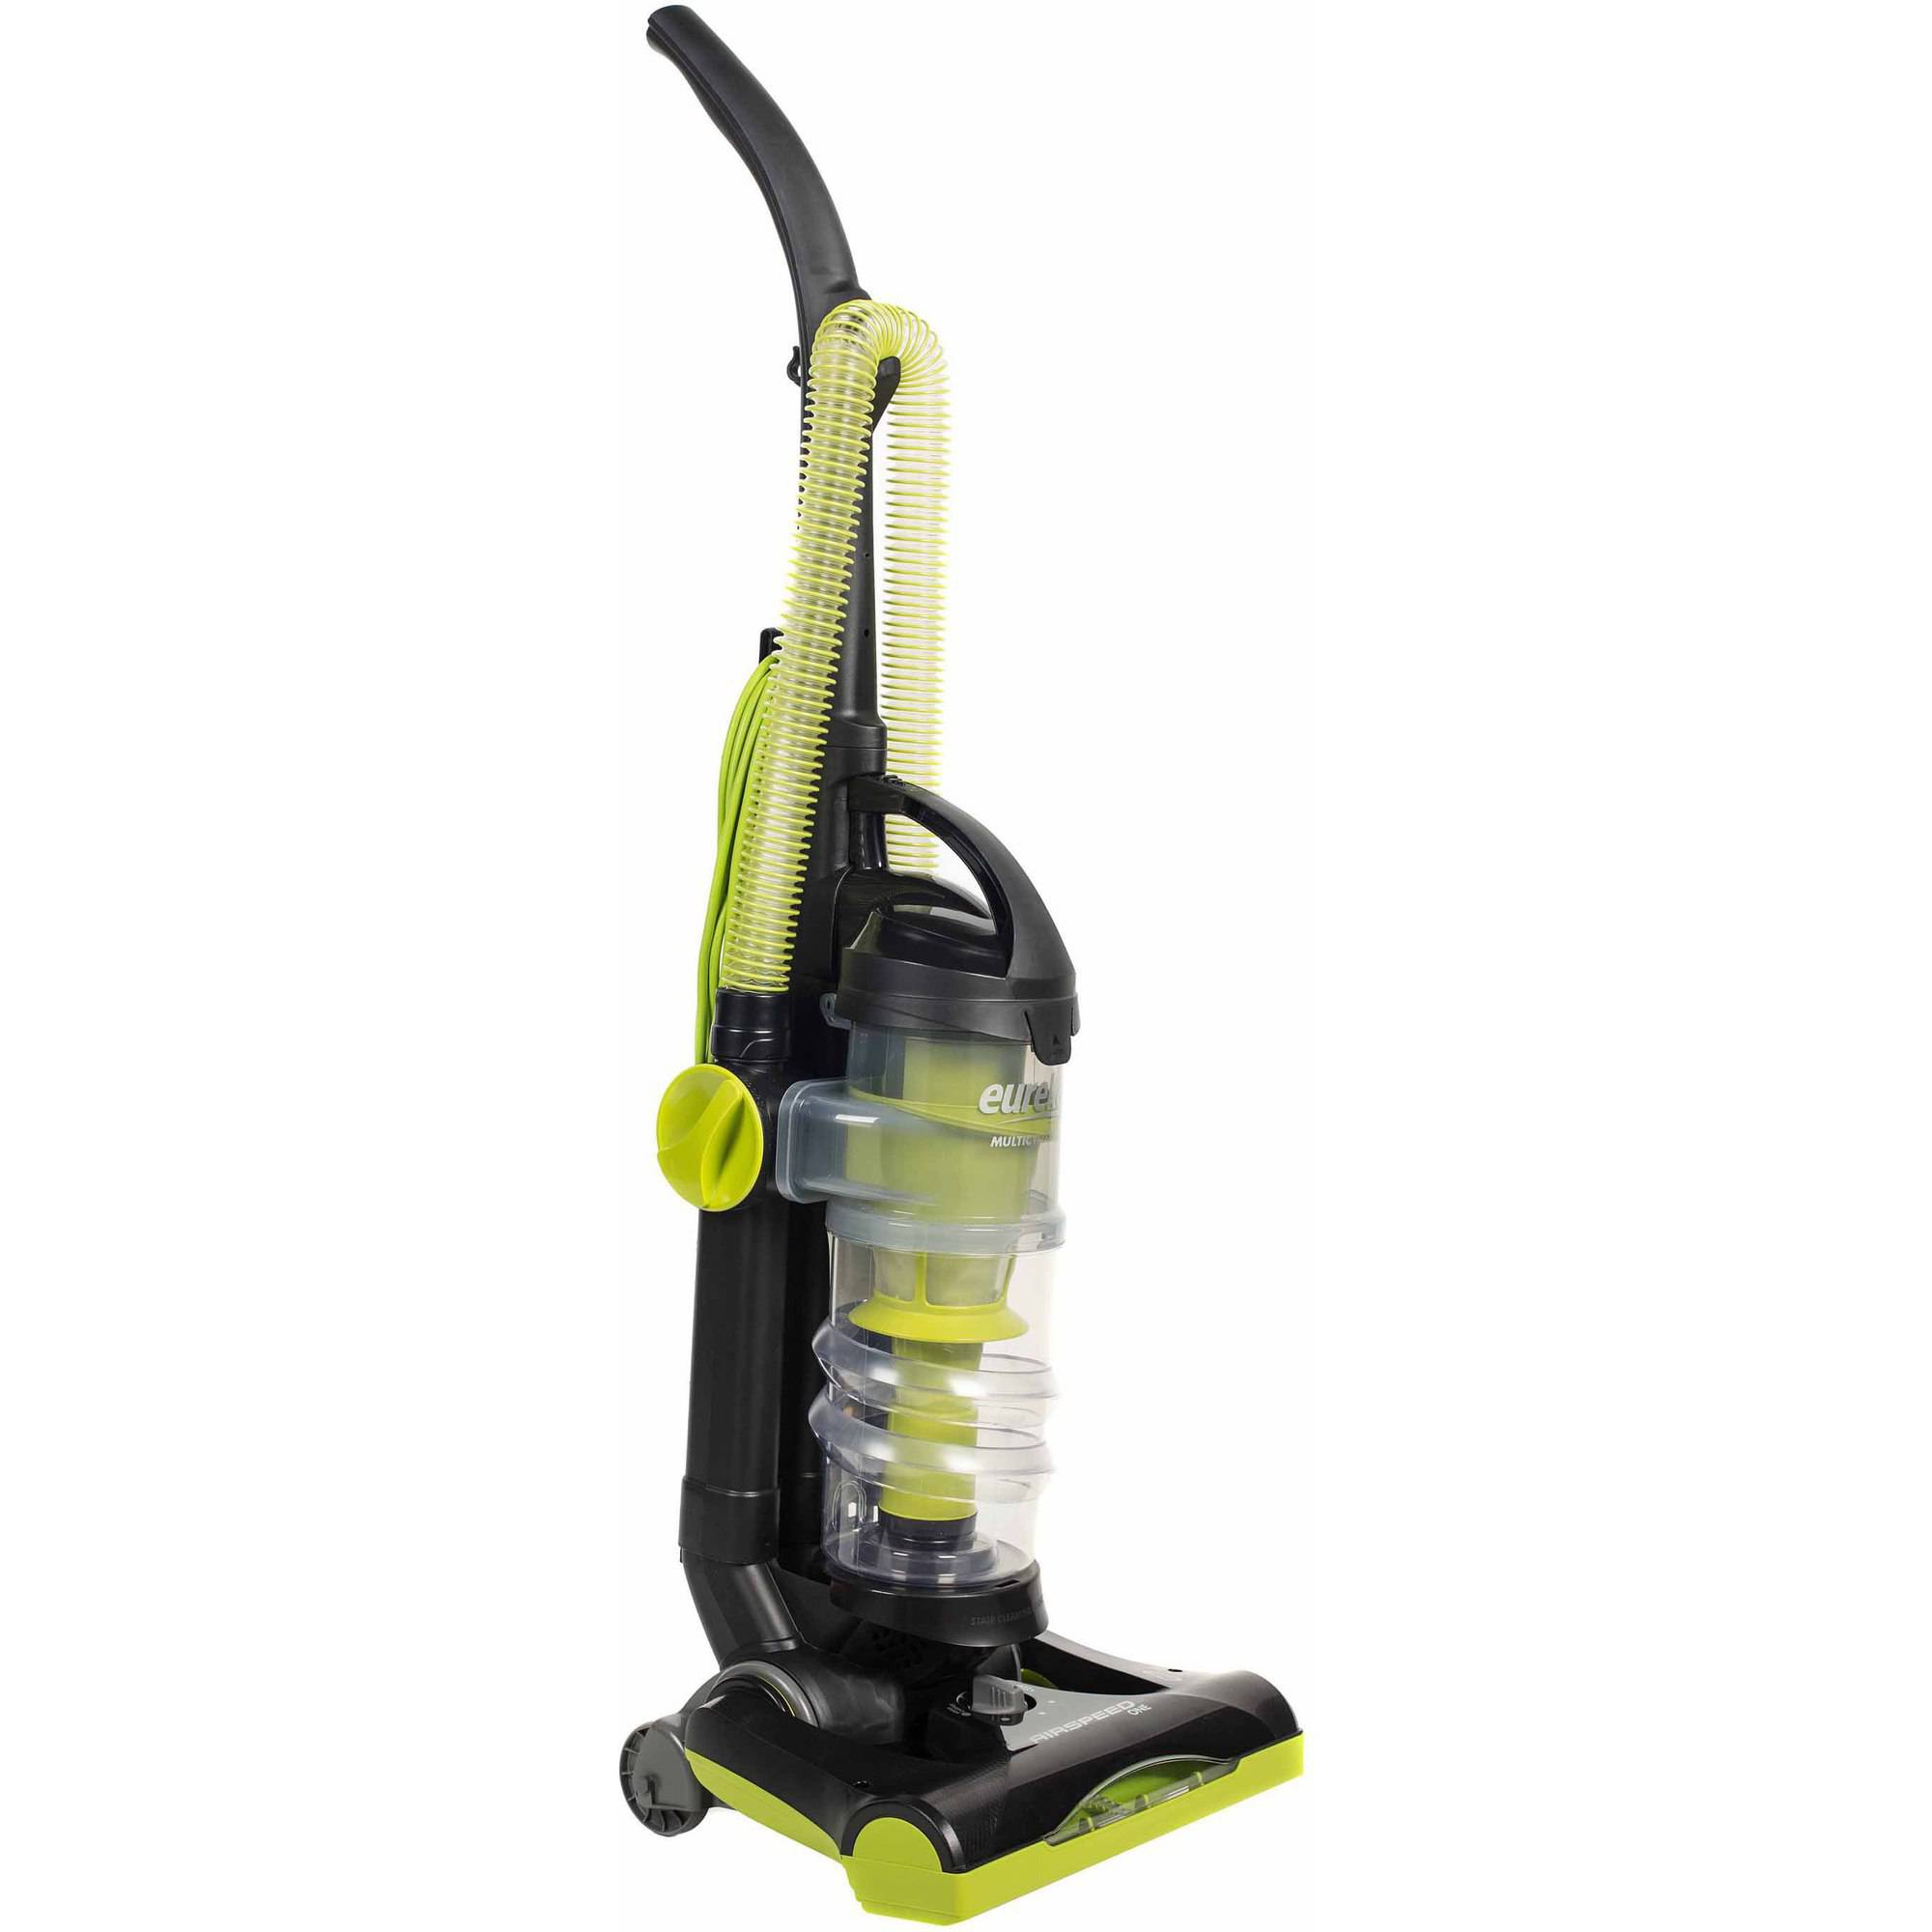 Review of Eureka Maxima 4700A Upright Vacuum